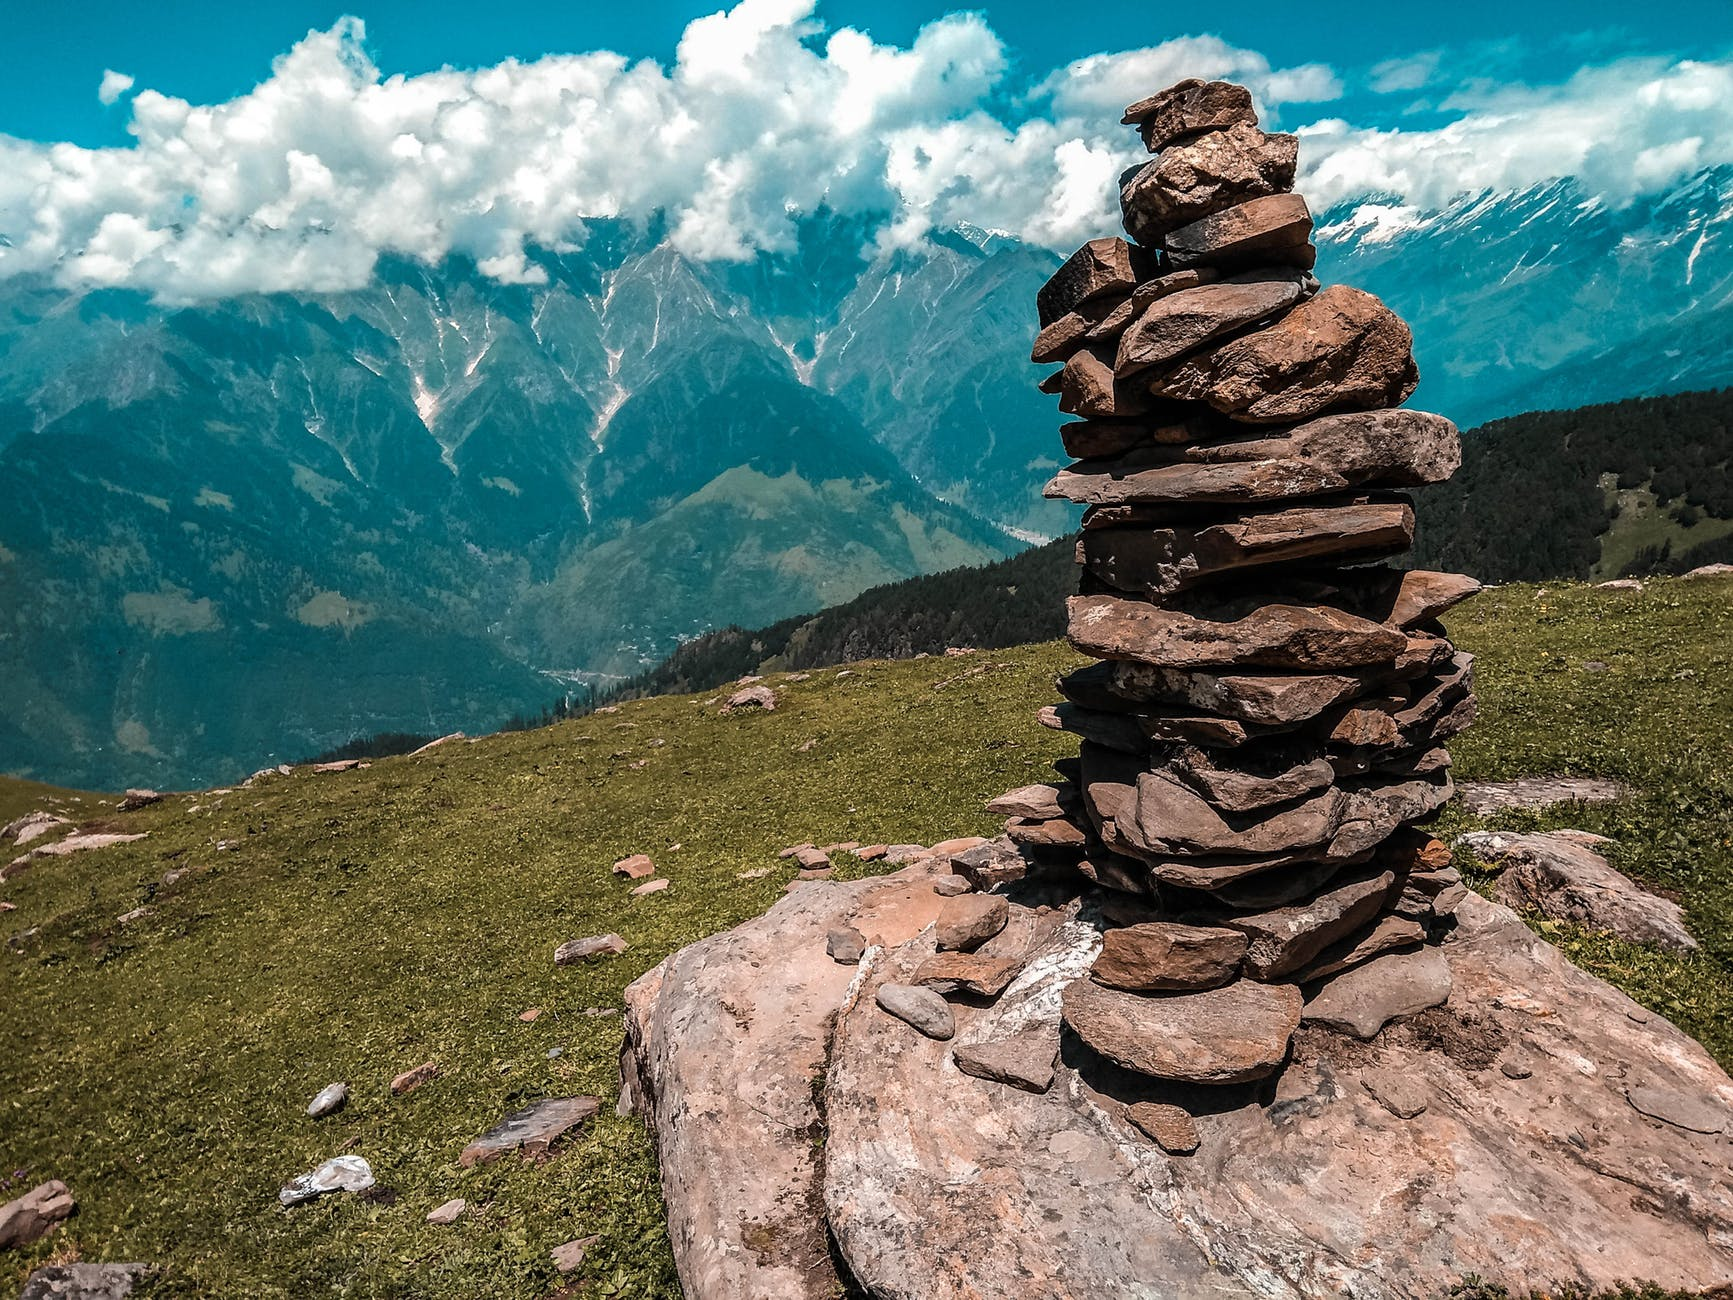 photo of rocks piled on top of each other